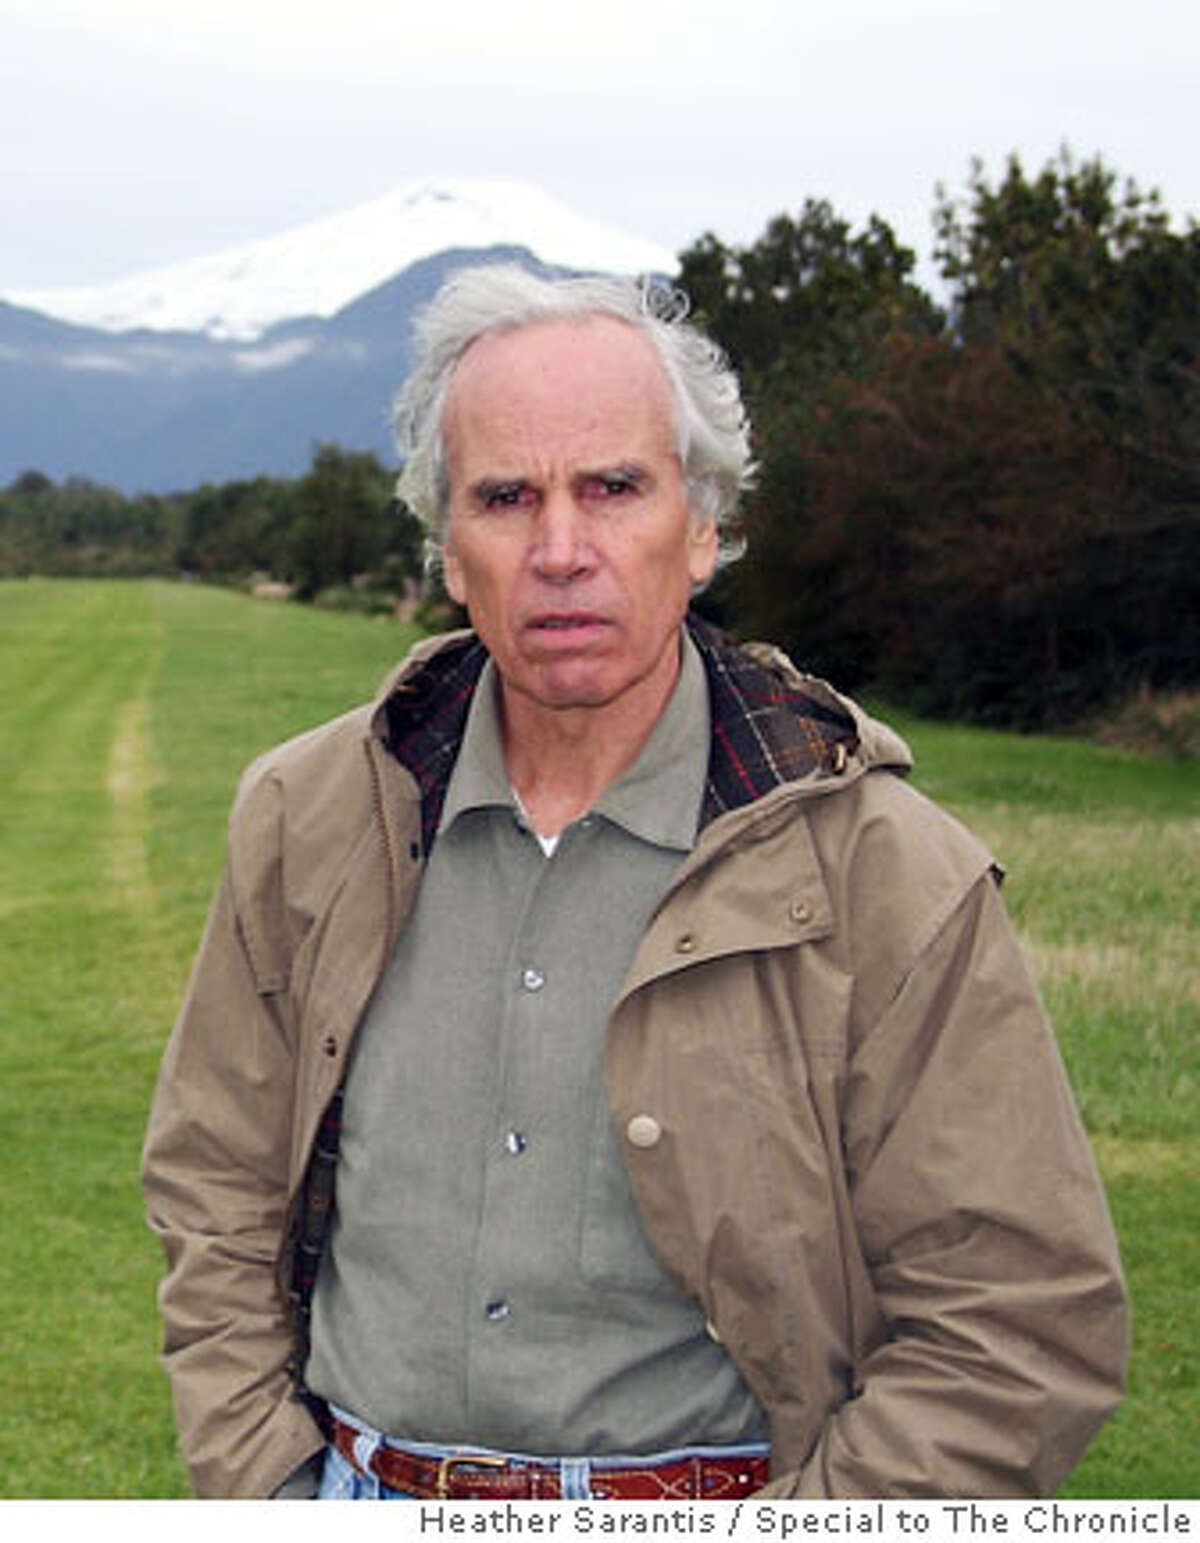 Doug Tompkins, founder of Esprit and The North Face stands on his land near Pumalin Park. He and his wife, Kristine McDivitt Tompkins, are using their fortune to protect some of Chile�s and Argentina�s most pristine ecosystems. Photo by Heather Sarantis/Special to The Chronicle